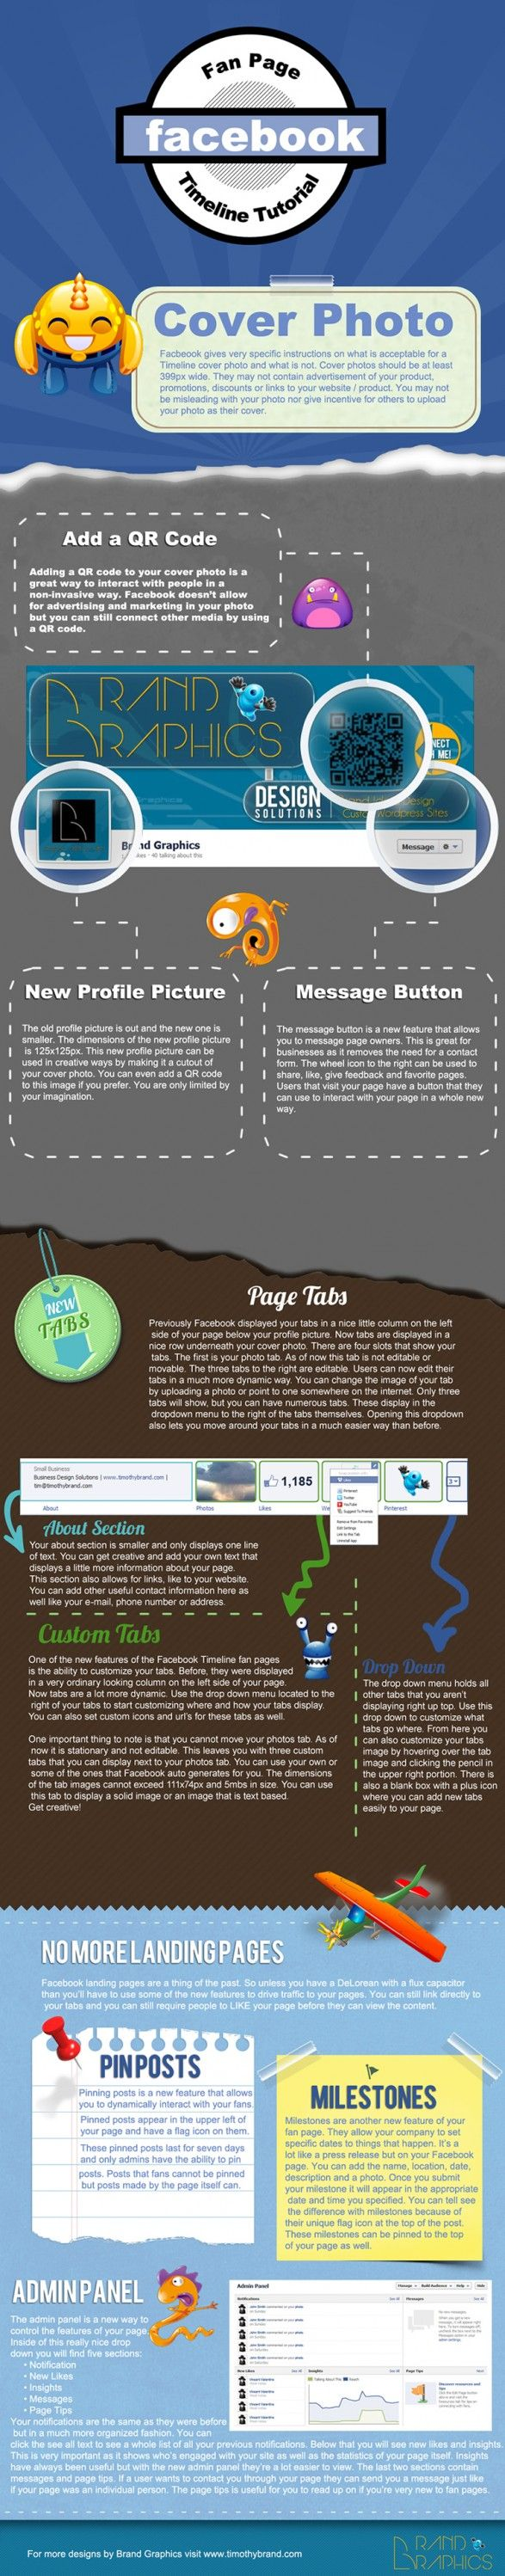 An infographic on how to adapt your Fan Page to the new Facebook Timeline